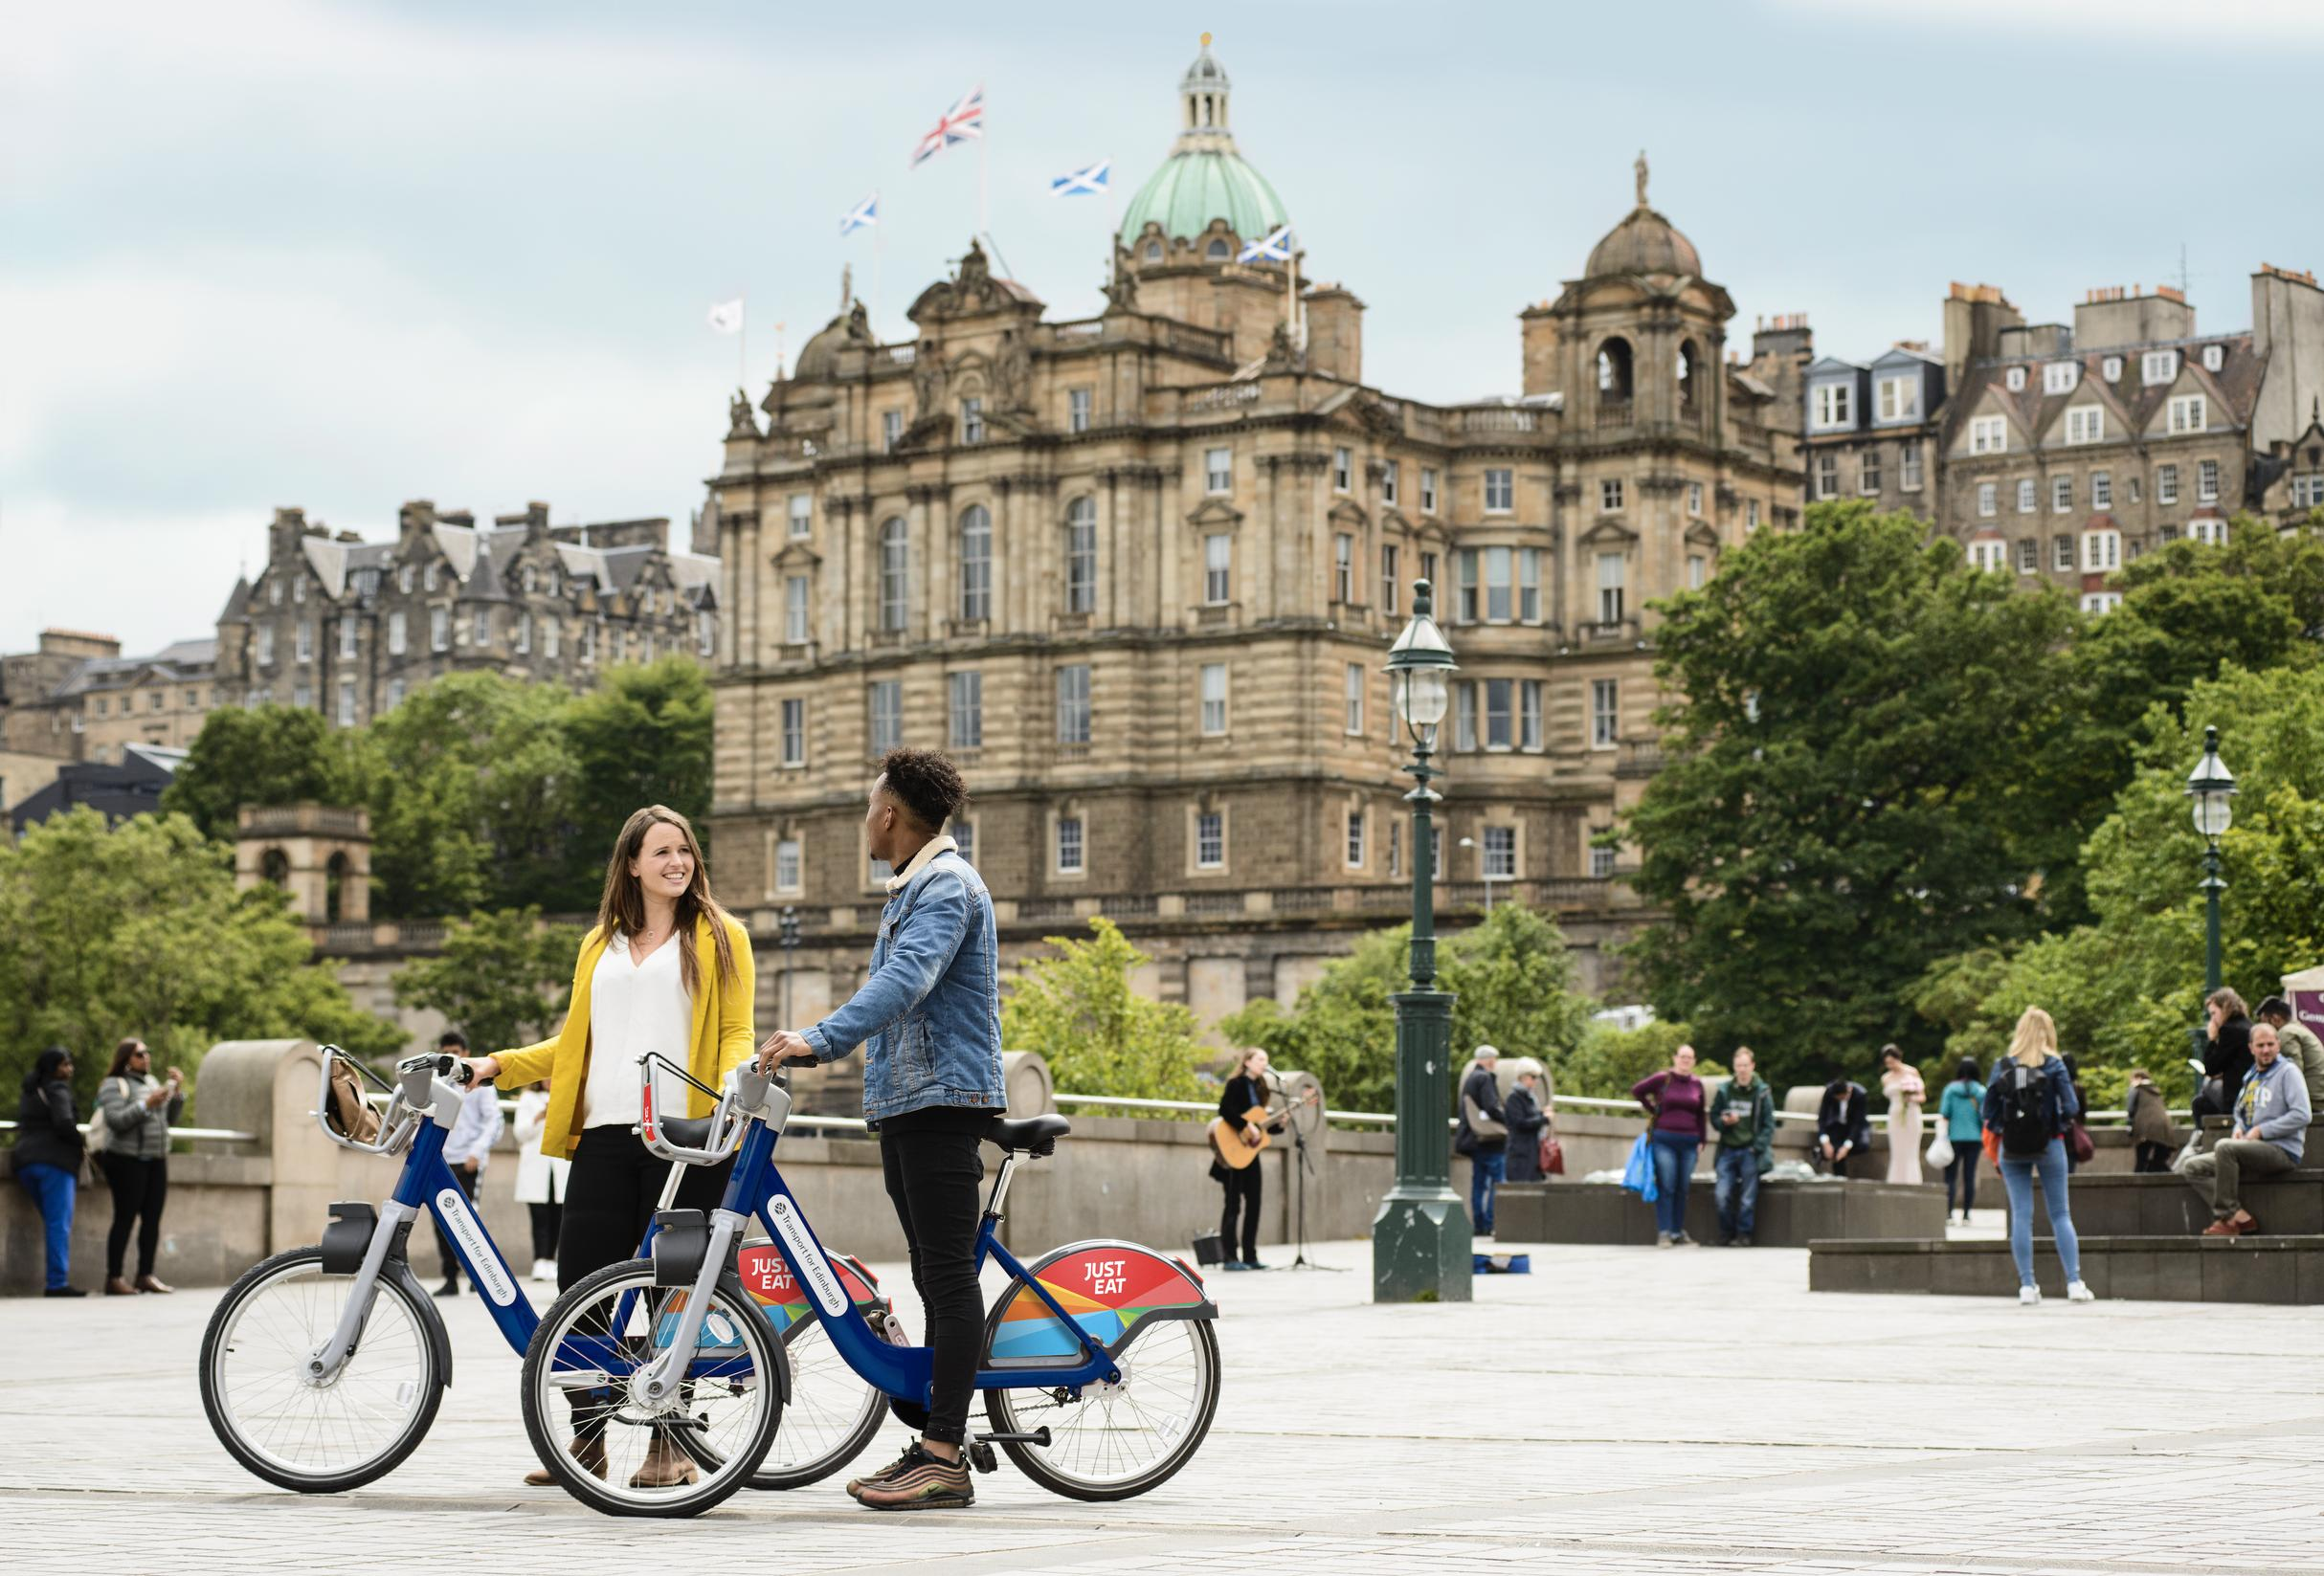 The Your Bike scheme in Edinburgh will to be known as 'Just Eat Cycles' following the recent announcement of Just Eat as the scheme sponsor